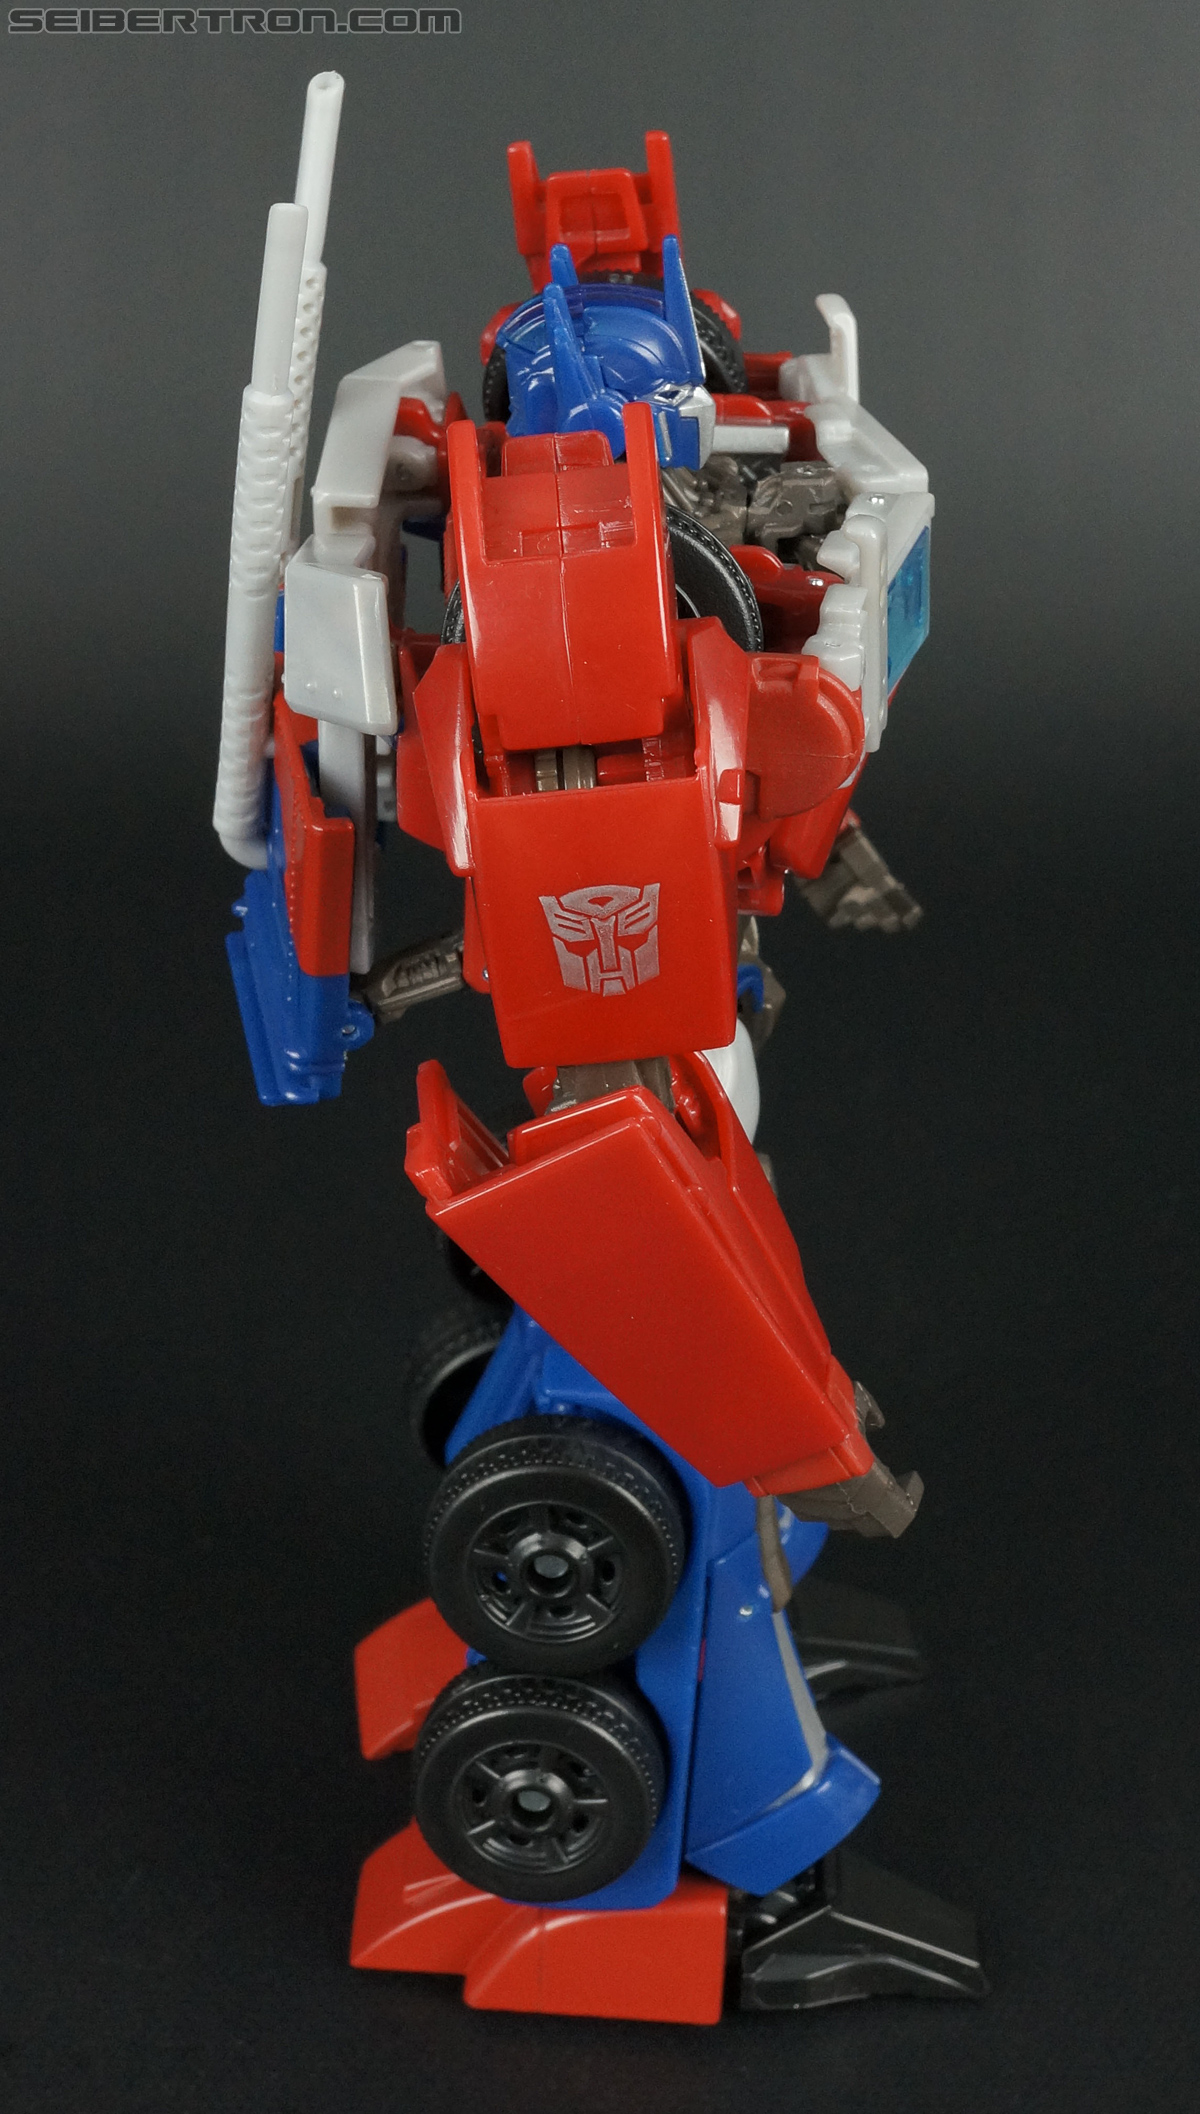 Transformers Prime: First Edition Optimus Prime (Image #84 of 175)